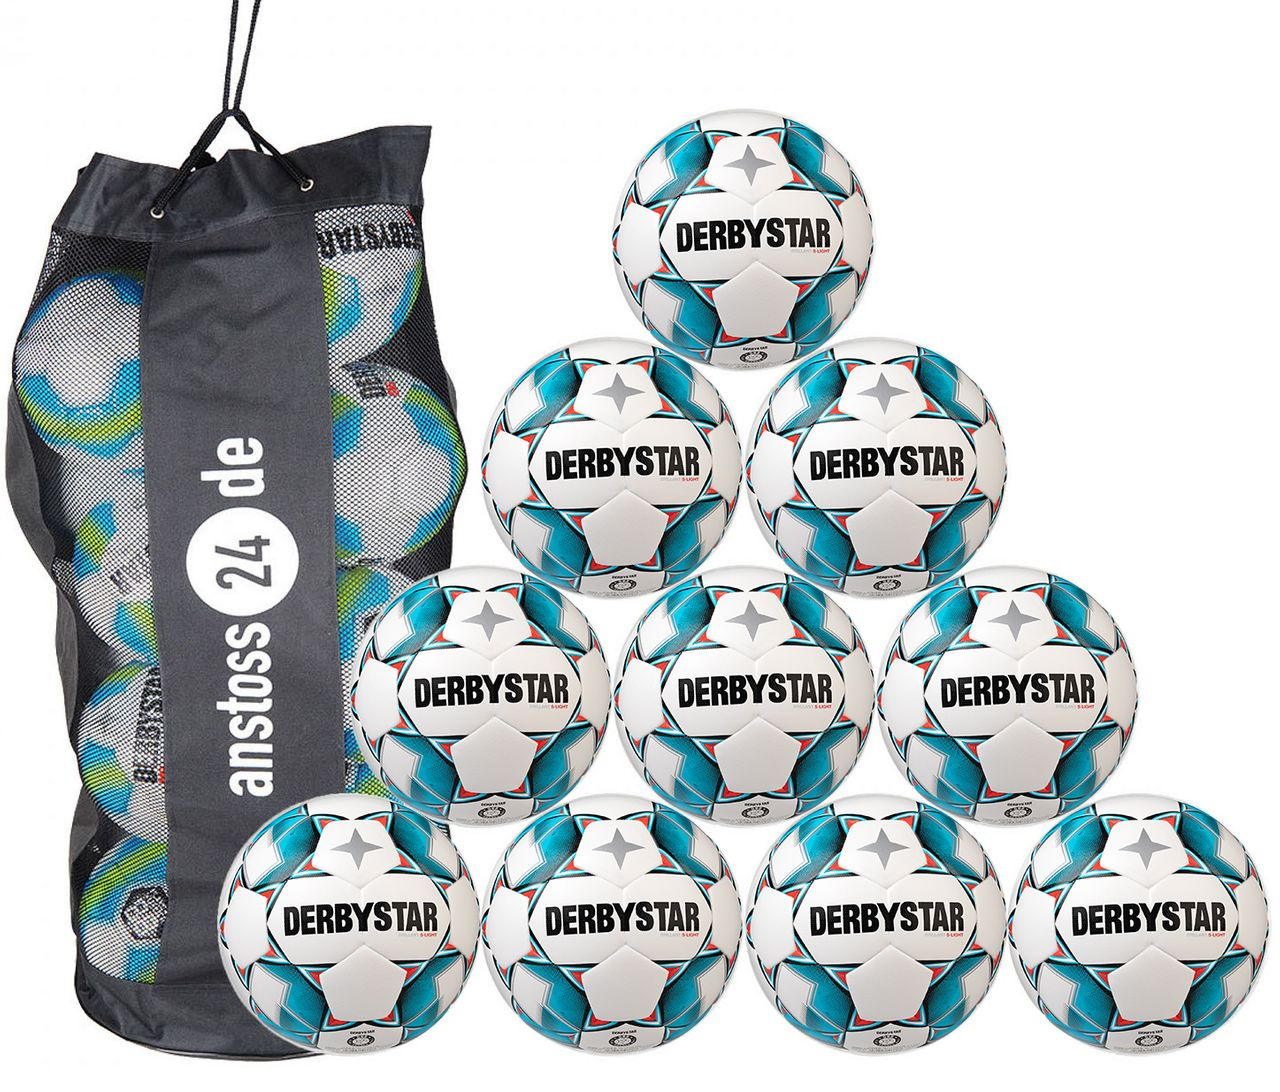 10 x DERBYSTAR Jugendball - BRILLANT S-LIGHT Dual Bonded inkl. Ballsack